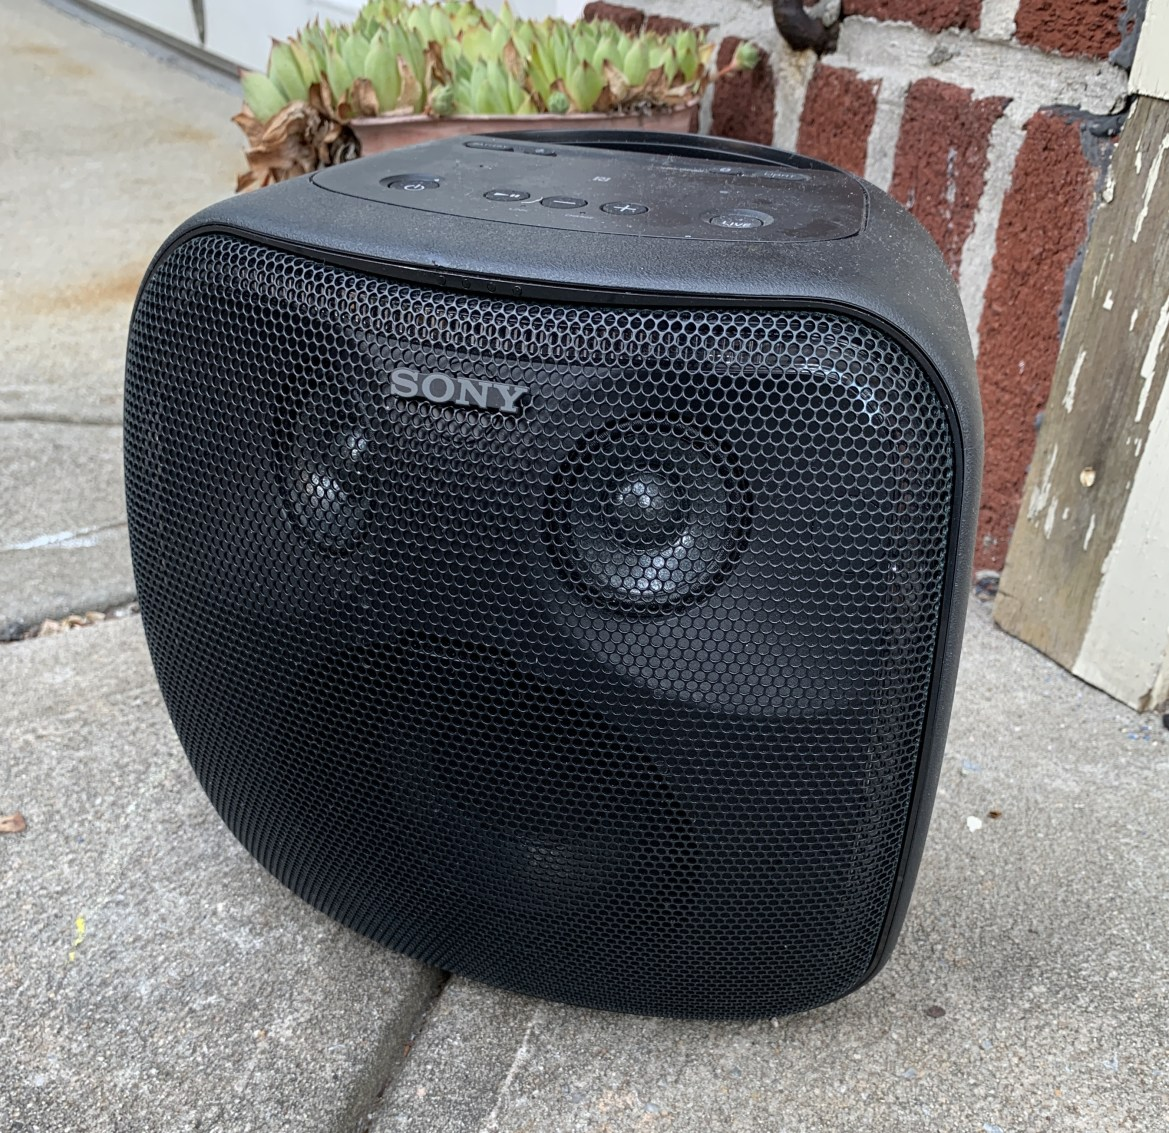 Sony brings the noise to your outdoor BBQ with the XB501G